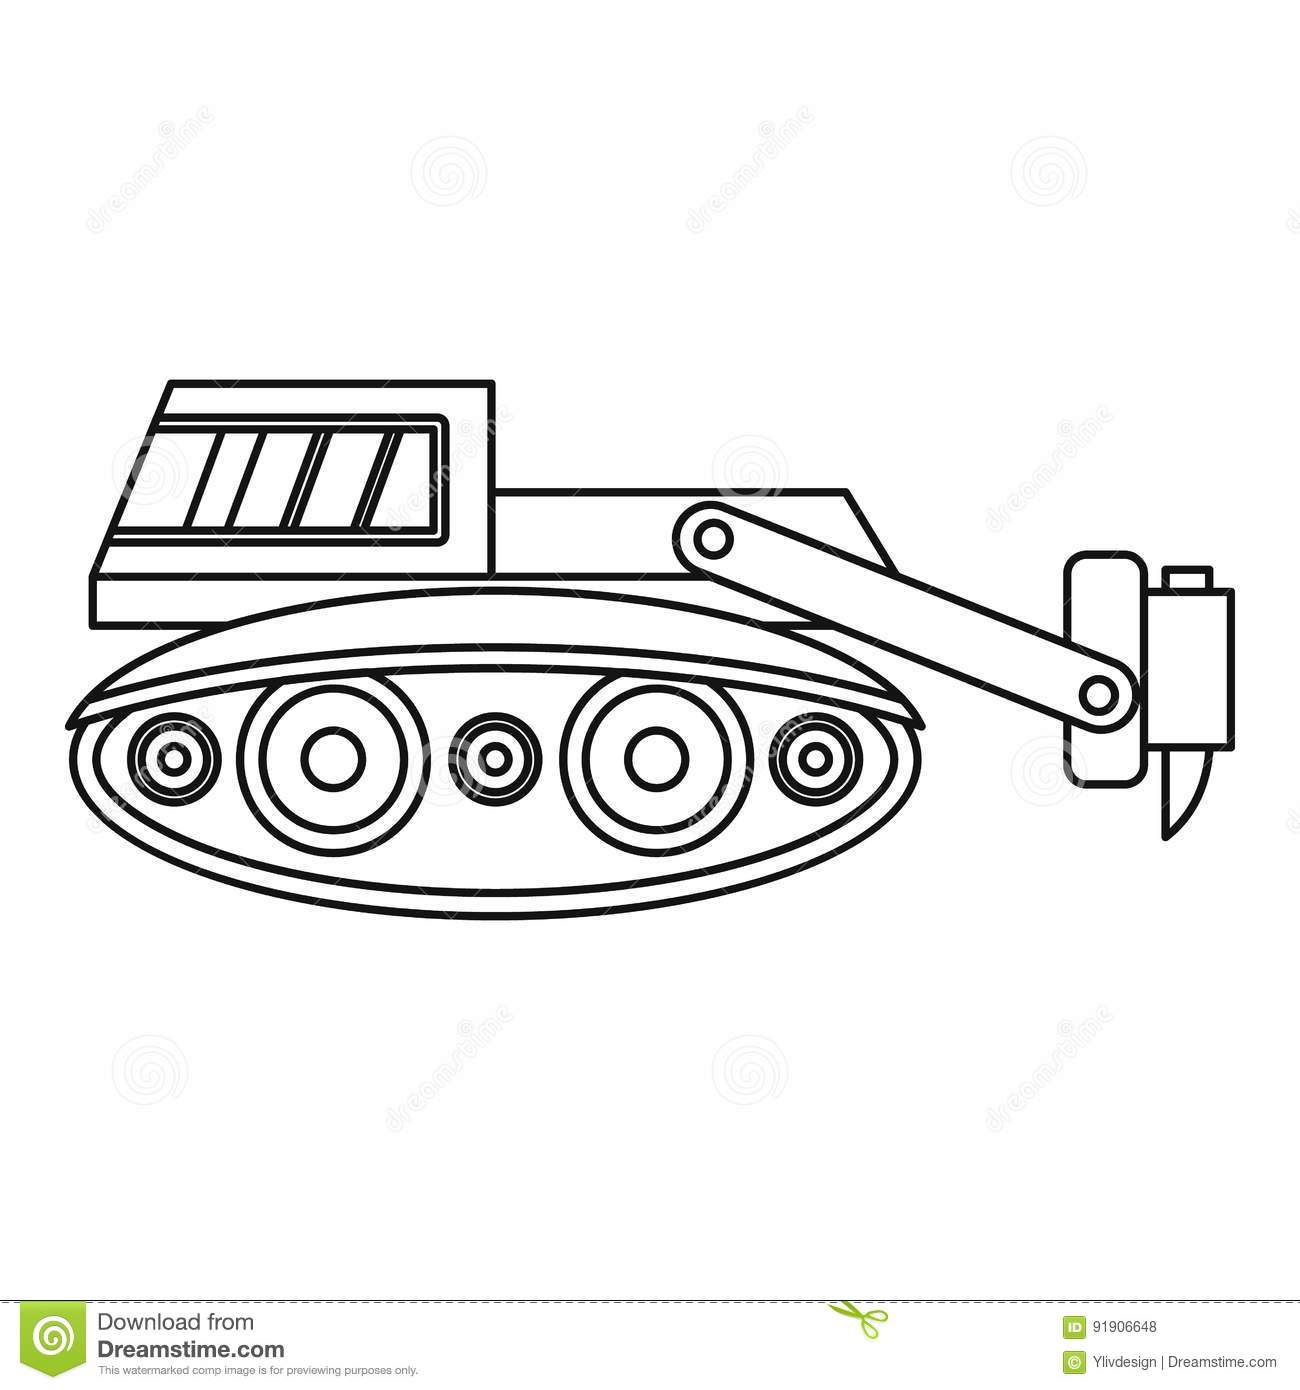 Outline Excavator Isolated Cartoon Vector